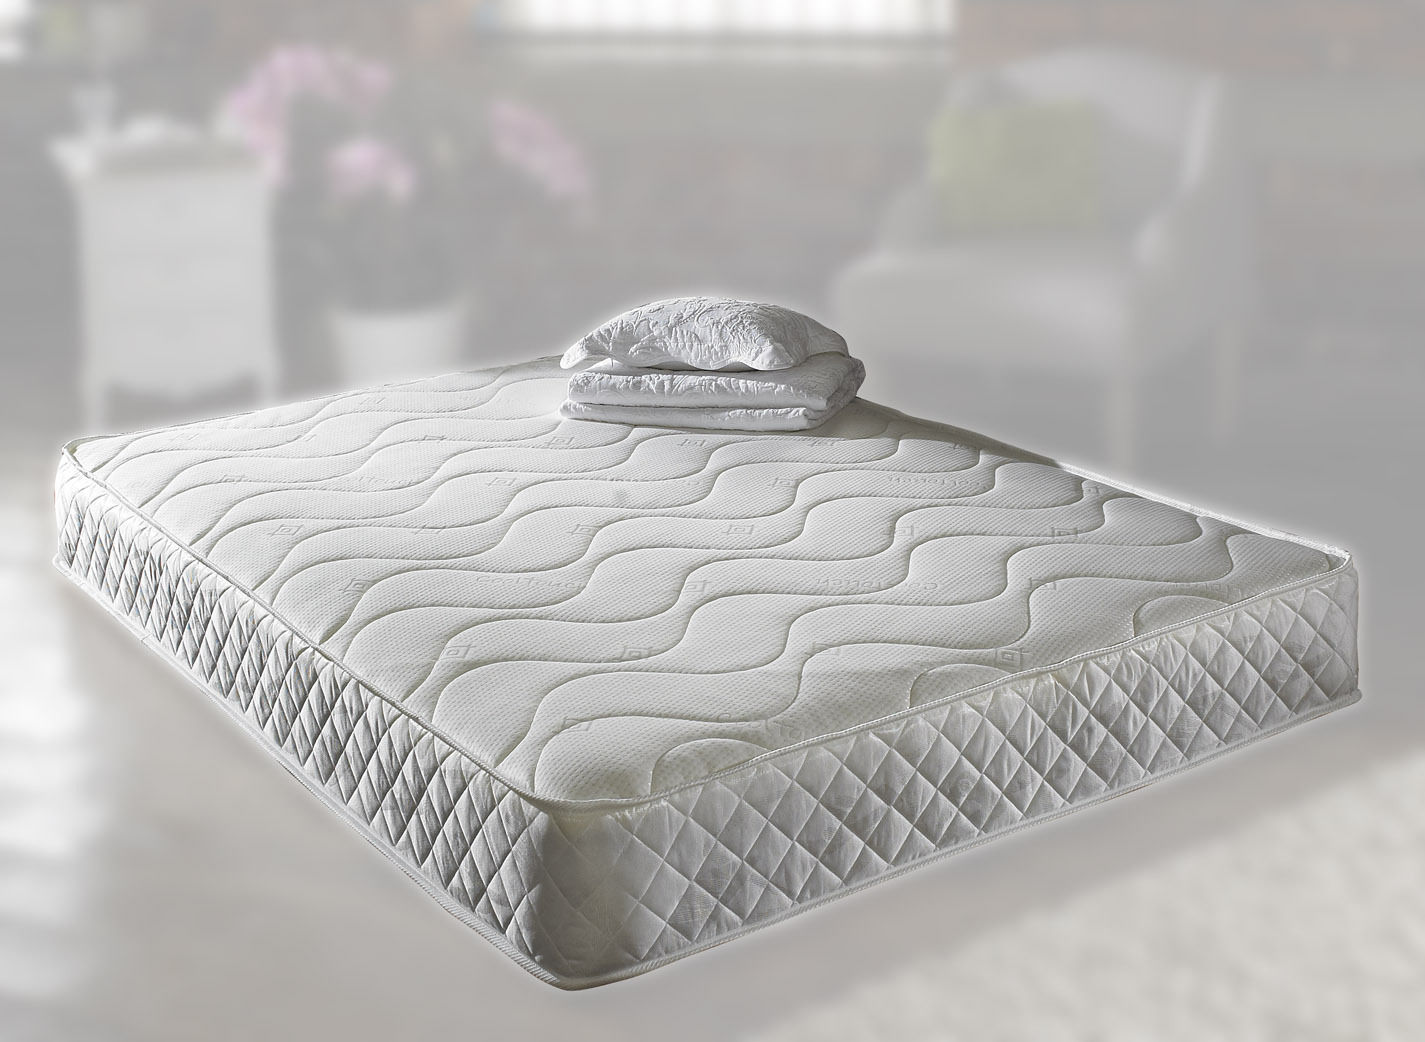 Pearl 4ft small double memory foam mattress in white mattress by jovial beds the mattress Double mattress memory foam